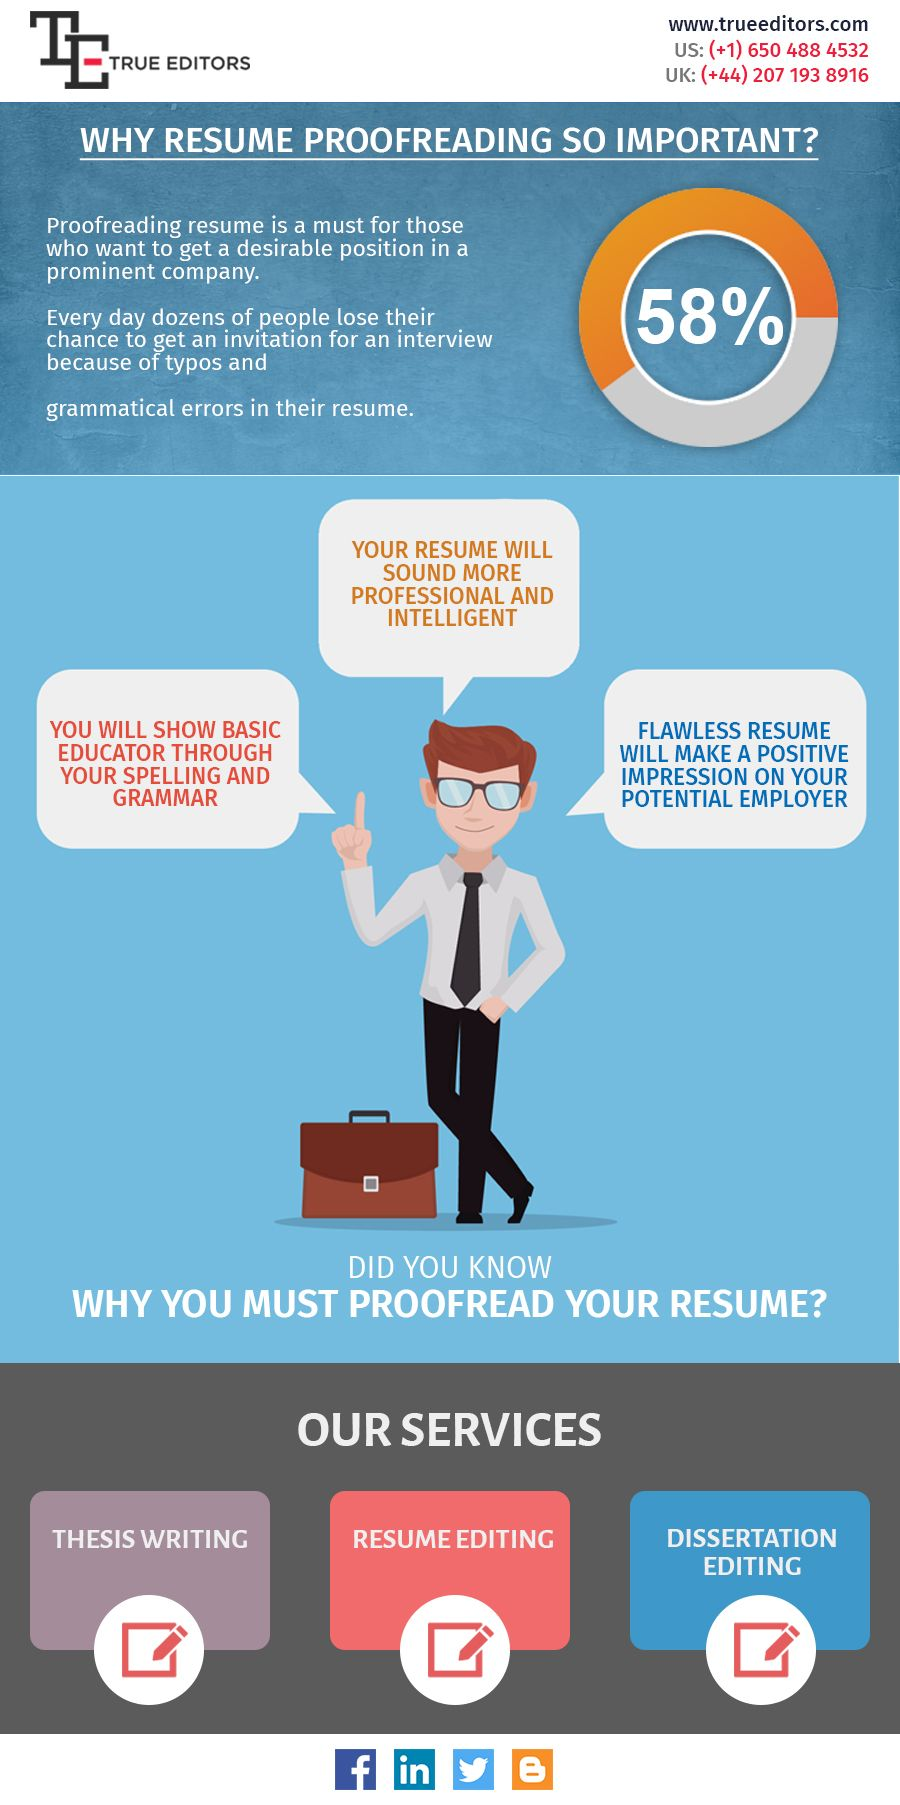 We provide best Resume Editing and Proofreading services